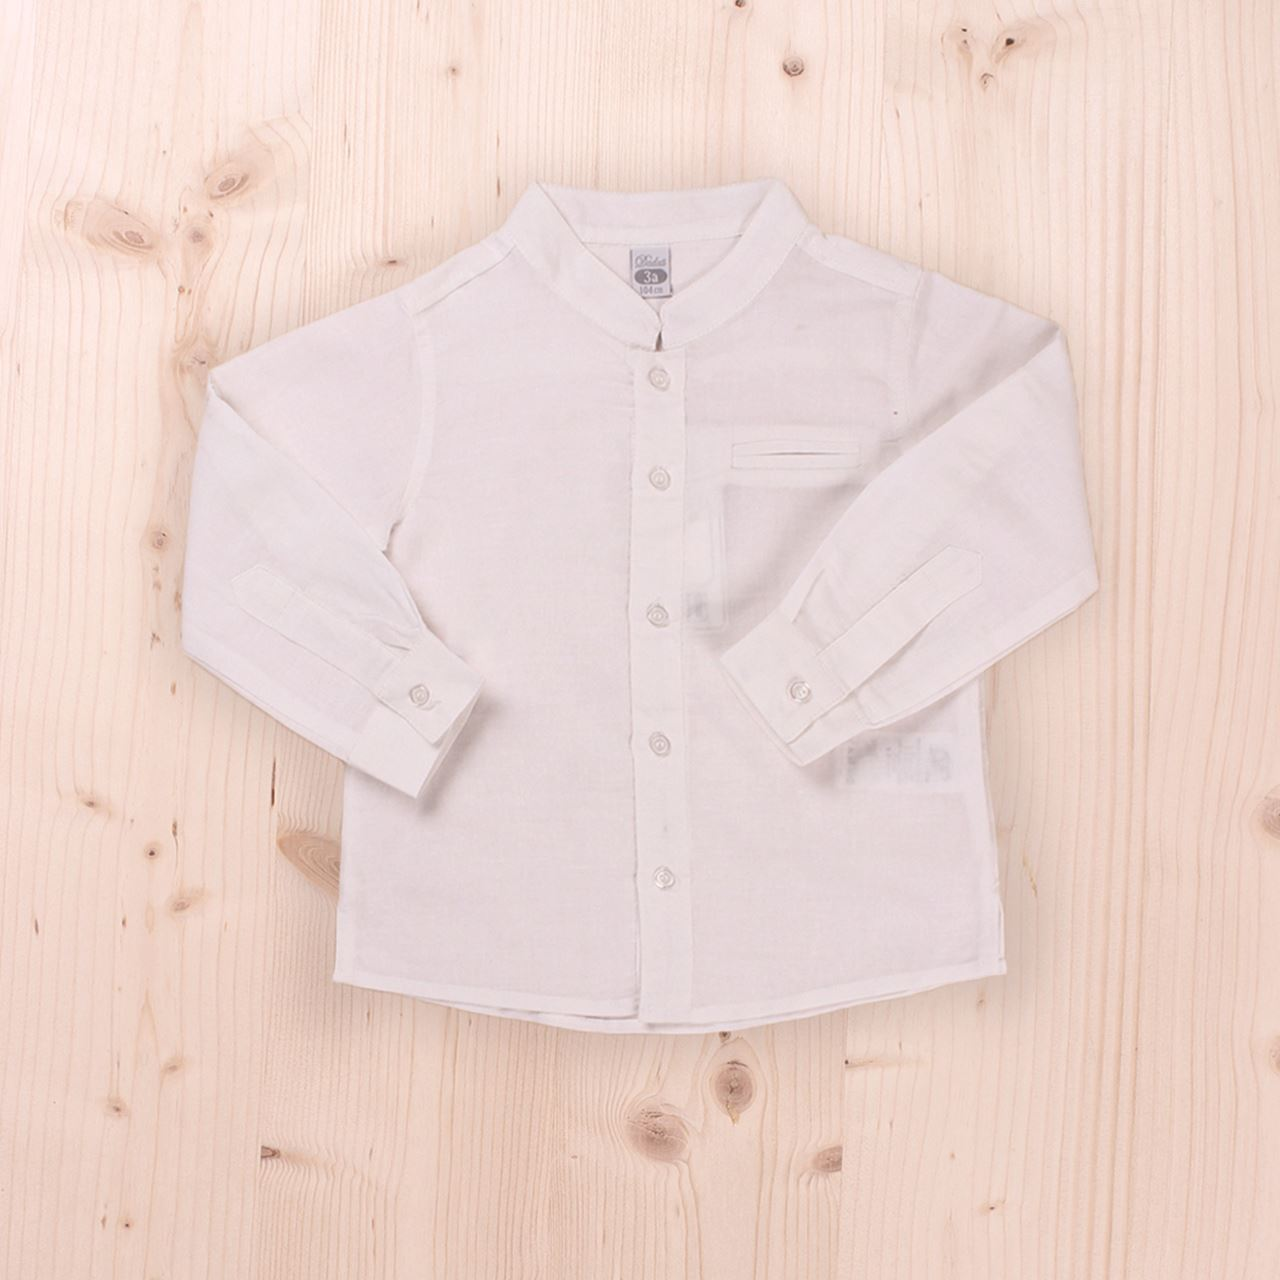 Picture of Camisa blanca bb